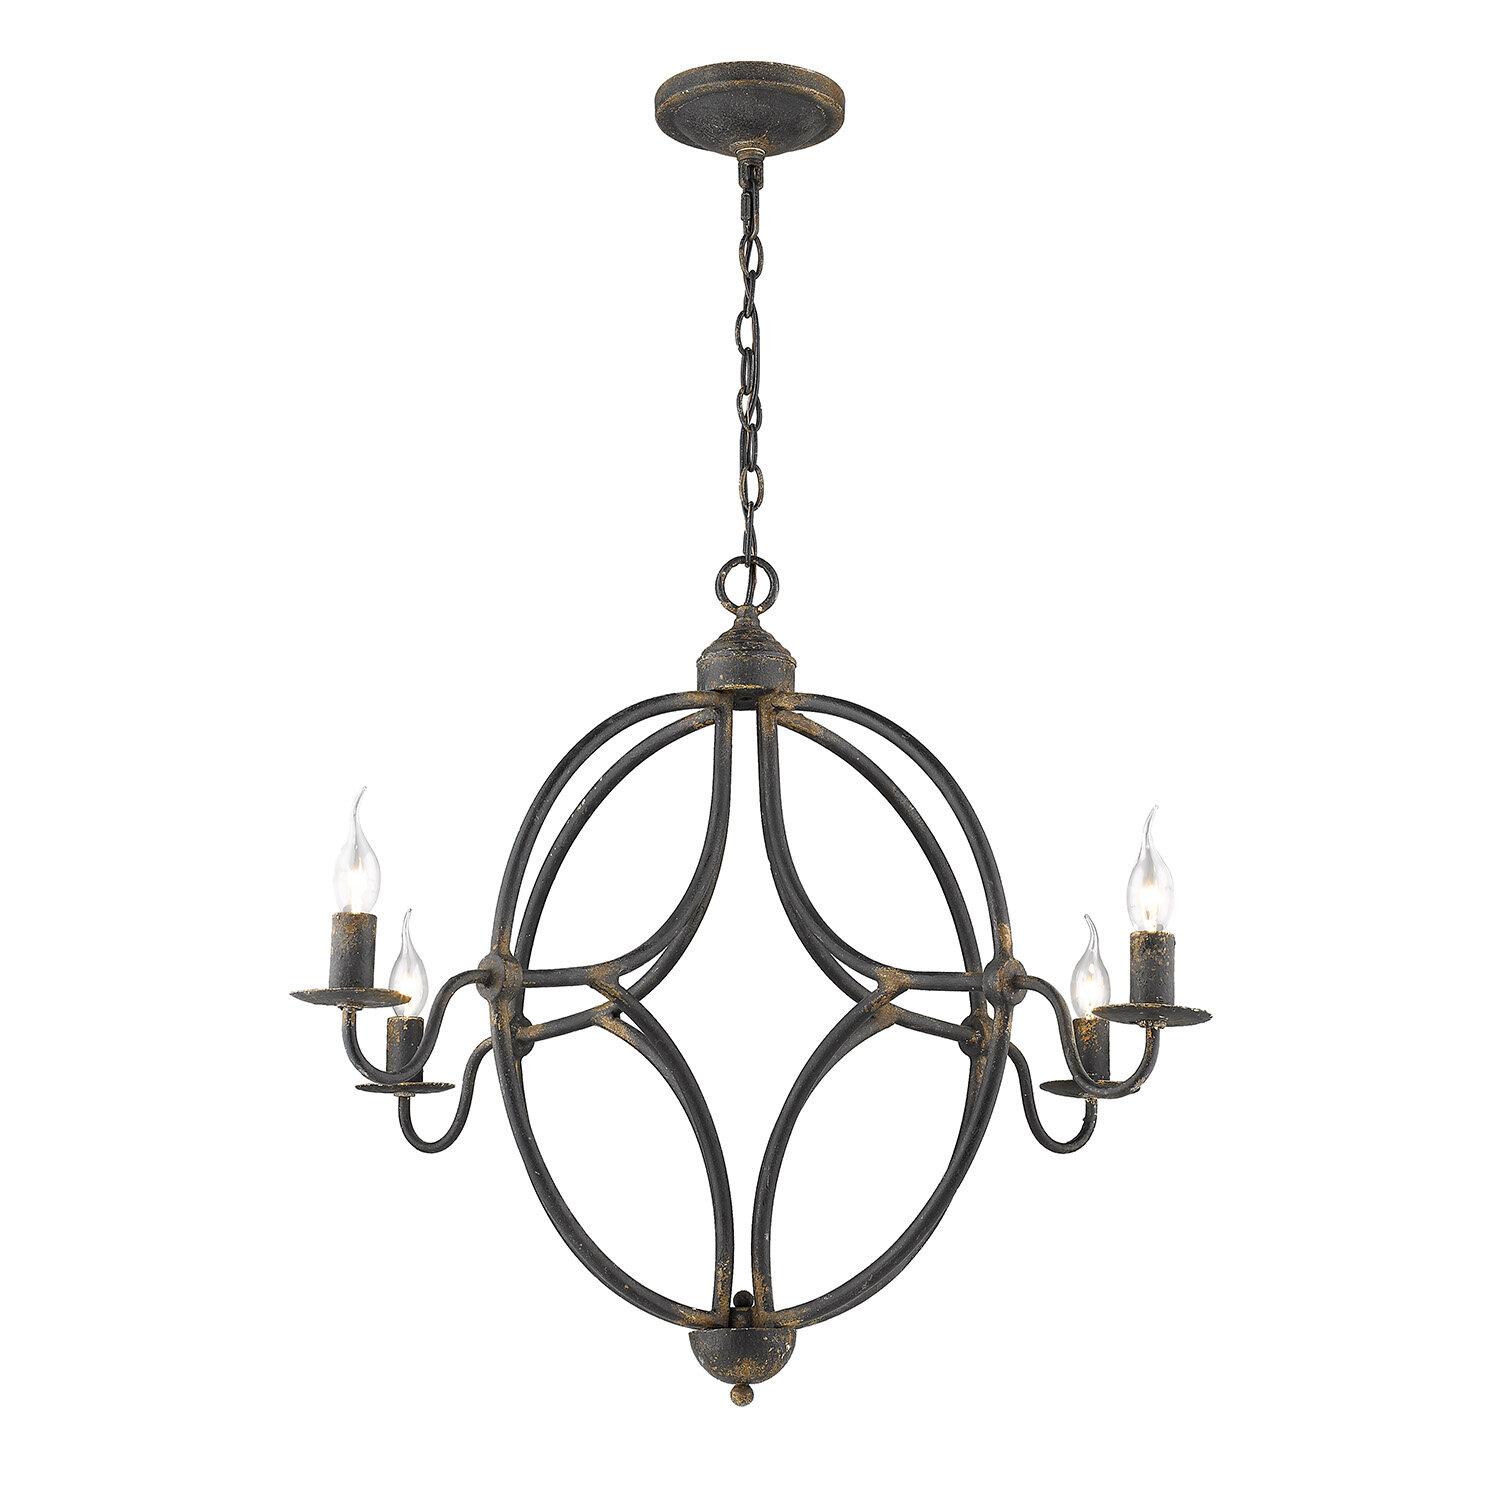 August Grove Castlebar 4 Light Candle Style Classic Traditional Chandelier Reviews Wayfair